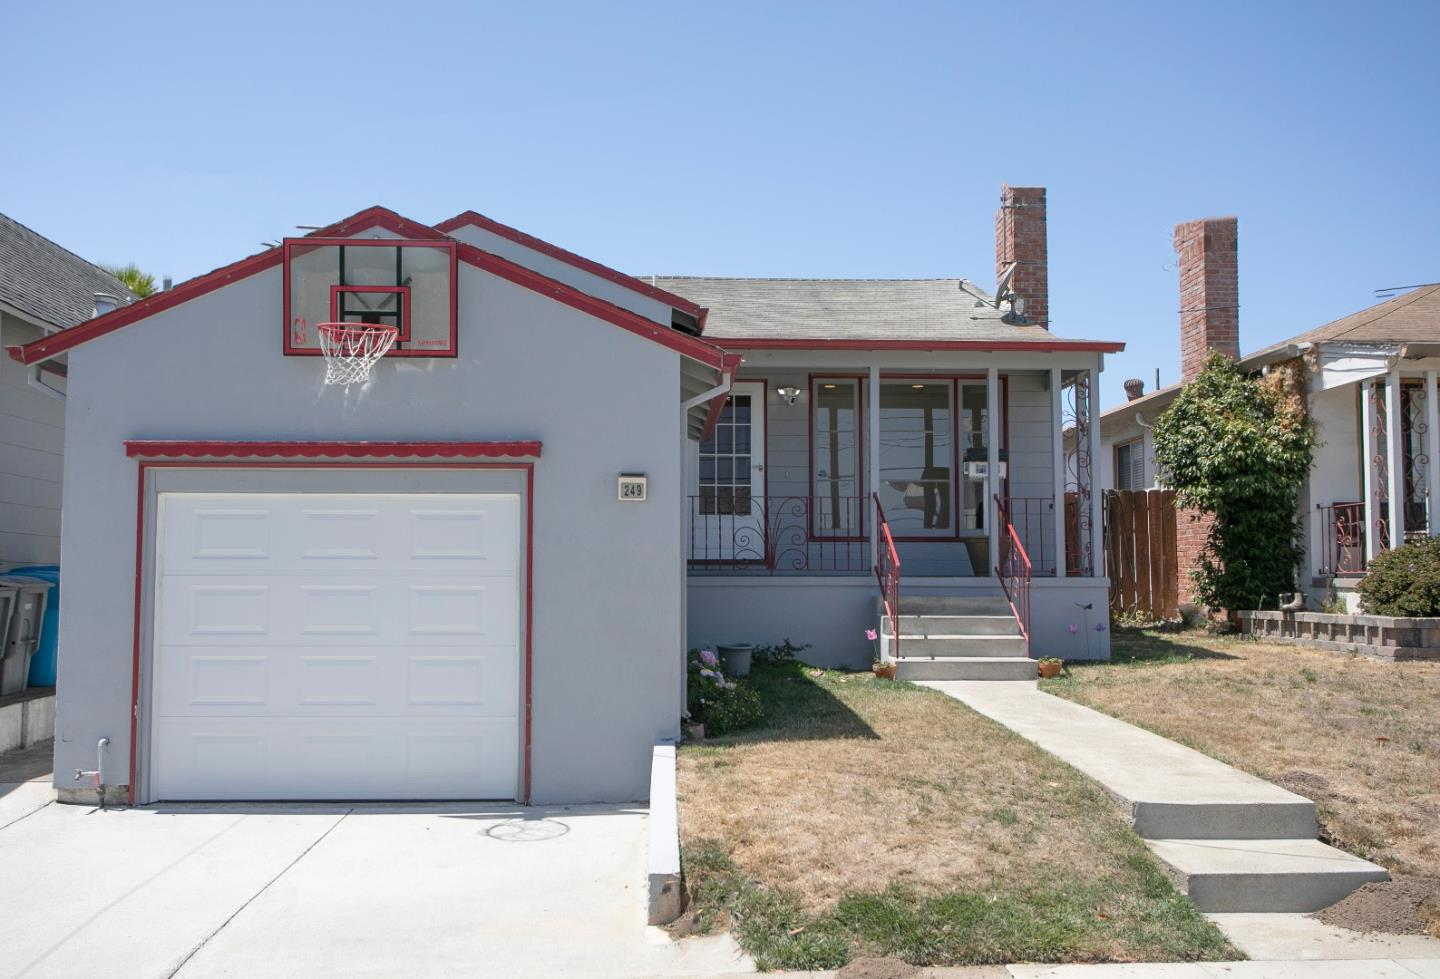 This 3-bedroom and 2 full bathroom ranch home is located in the prestigious Huntington Park neighborhood of San Bruno and is immaculate & full of upgrades! Enjoy this one-story open floor plan with recessed lighting large windows throughout. The gourmet kitchen is designed to be the heart of the home, which opens into the living and dining area, complete with large-customized countertops & stainless-steel appliances. Updated recessed lighting throughout the entire home. Fully updated guest bathroom and laundry room. This floor plan includes a 500 square feet addition completed in 2005 with permits, increasing the total square footage. Large back patio area perfect for entertaining and located right off the great room. Enjoy the fully fenced backyard perfect for kids & pets.